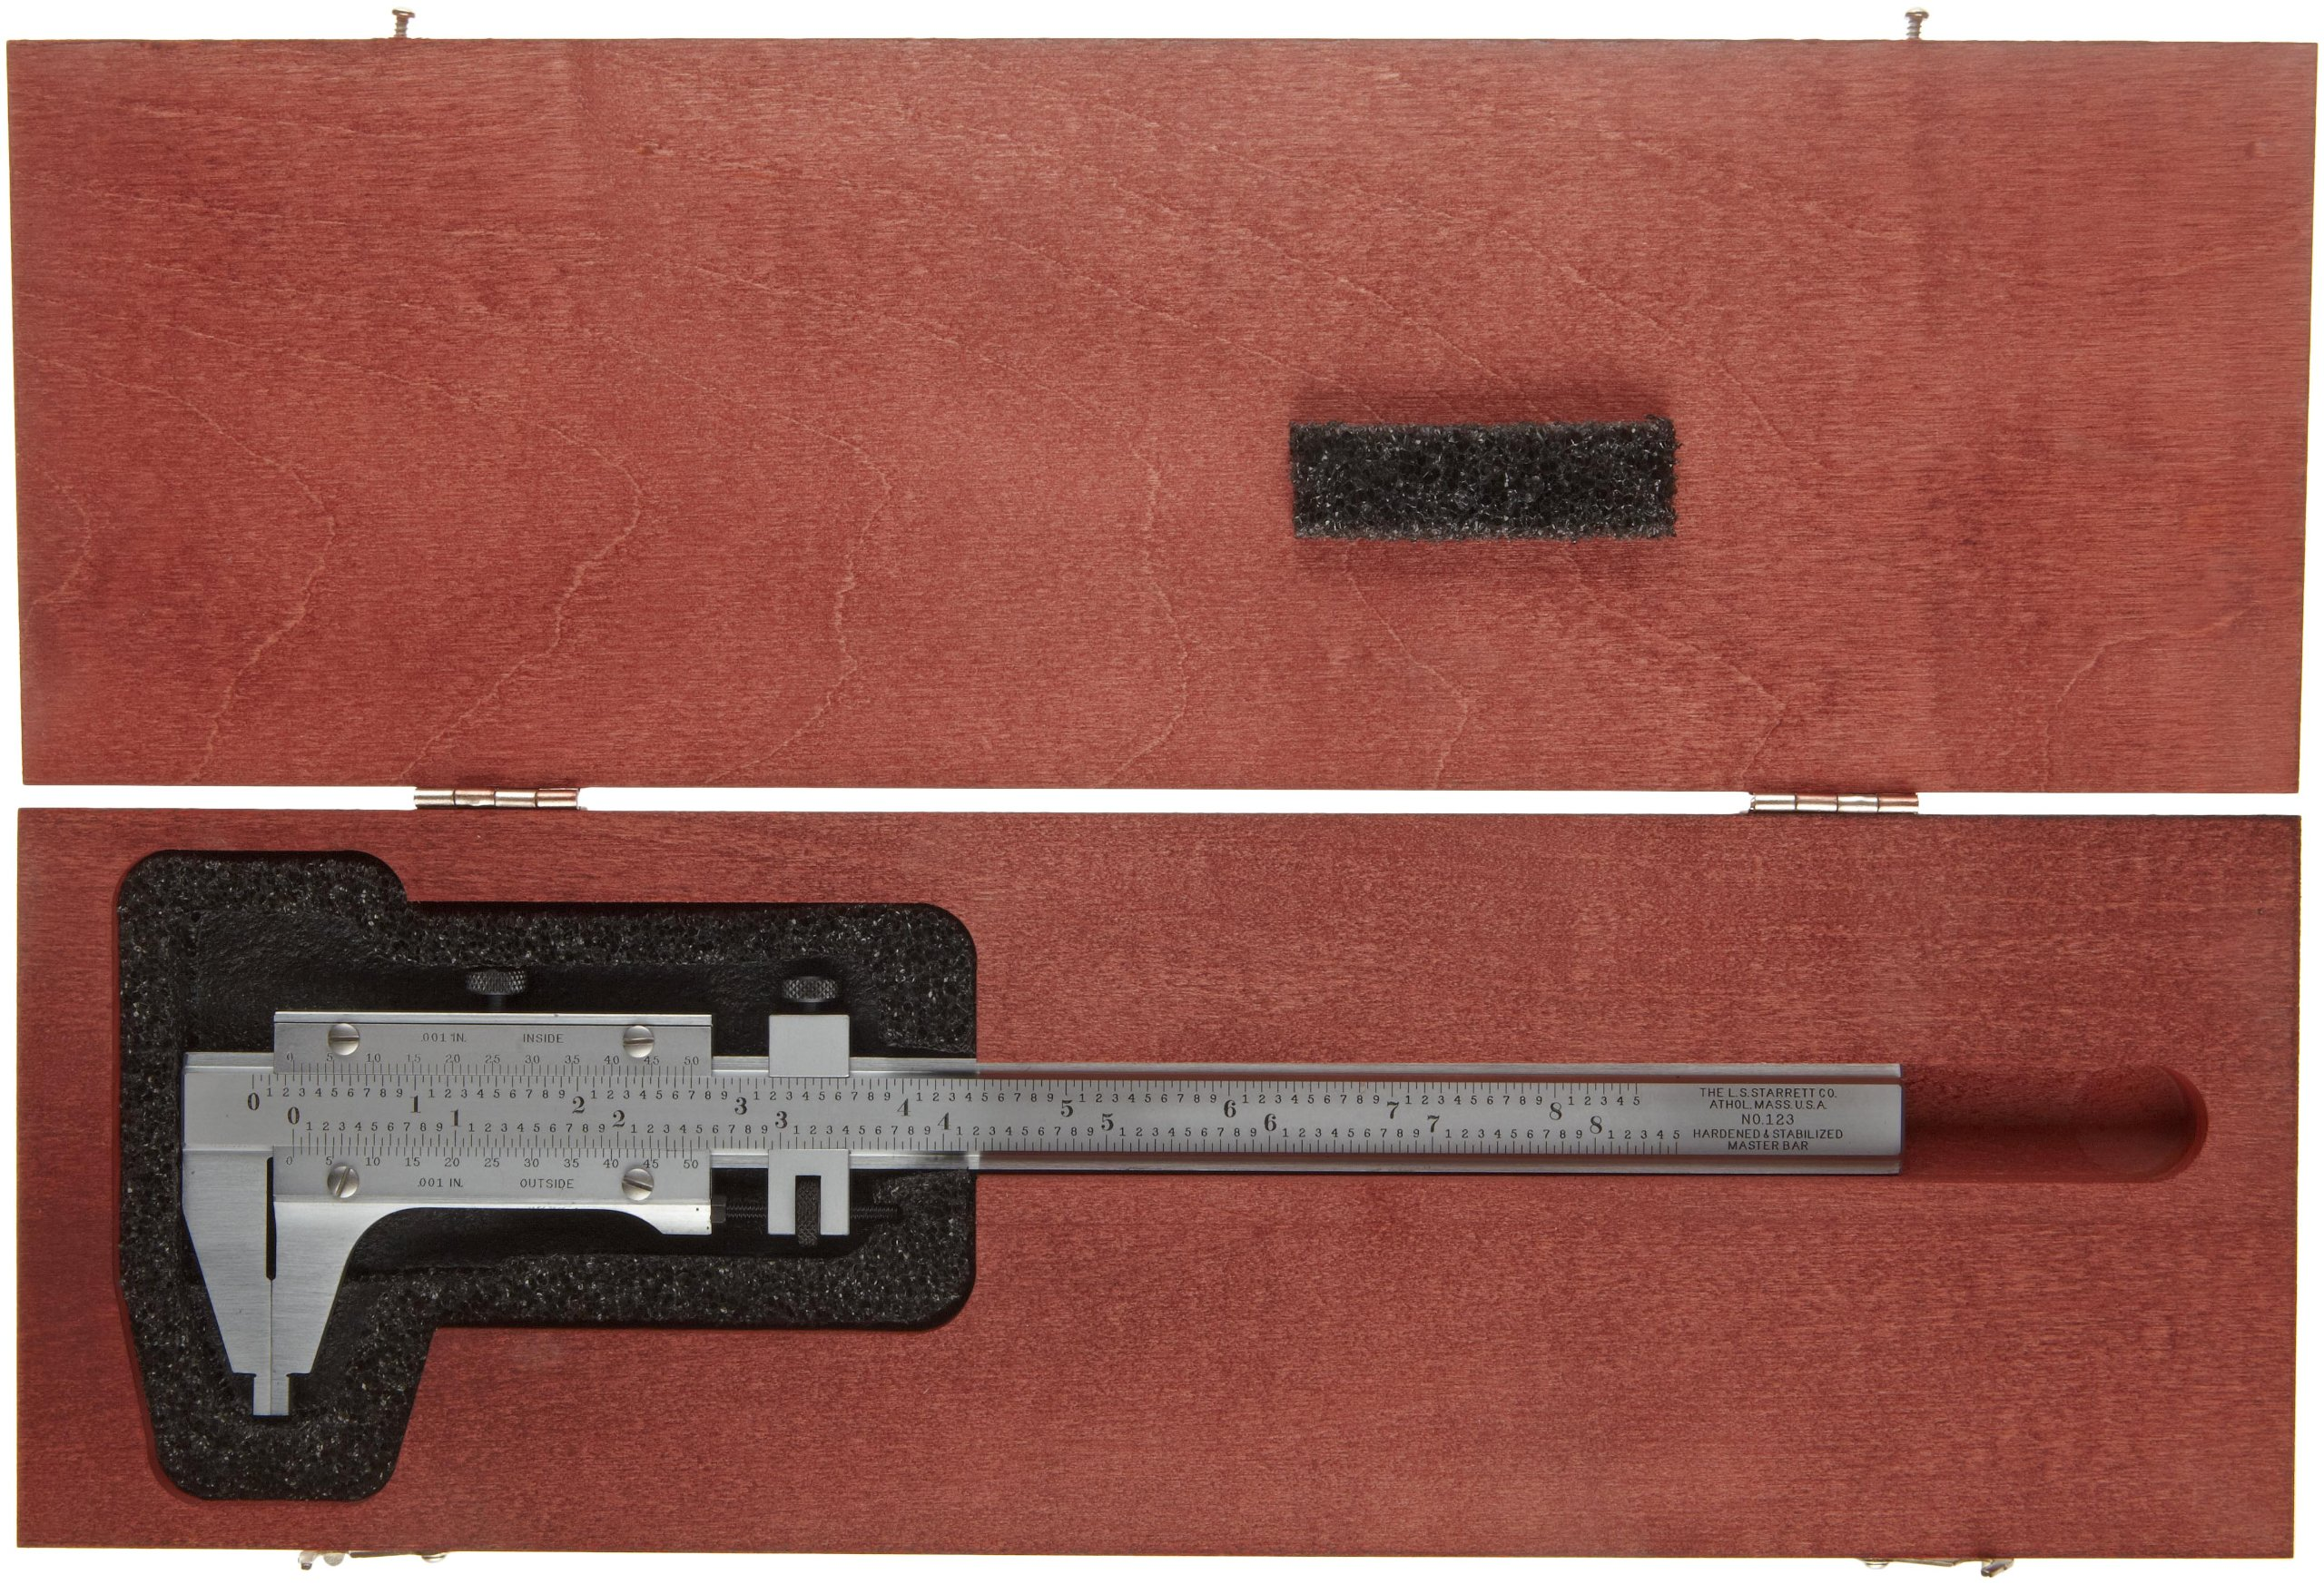 Starrett 123Z-6 Vernier Caliper, Steel, Nib Style Jaw, 0-6'' Range, +/-0.0005'' Accuracy, 0.001'' Resolution by Starrett (Image #2)